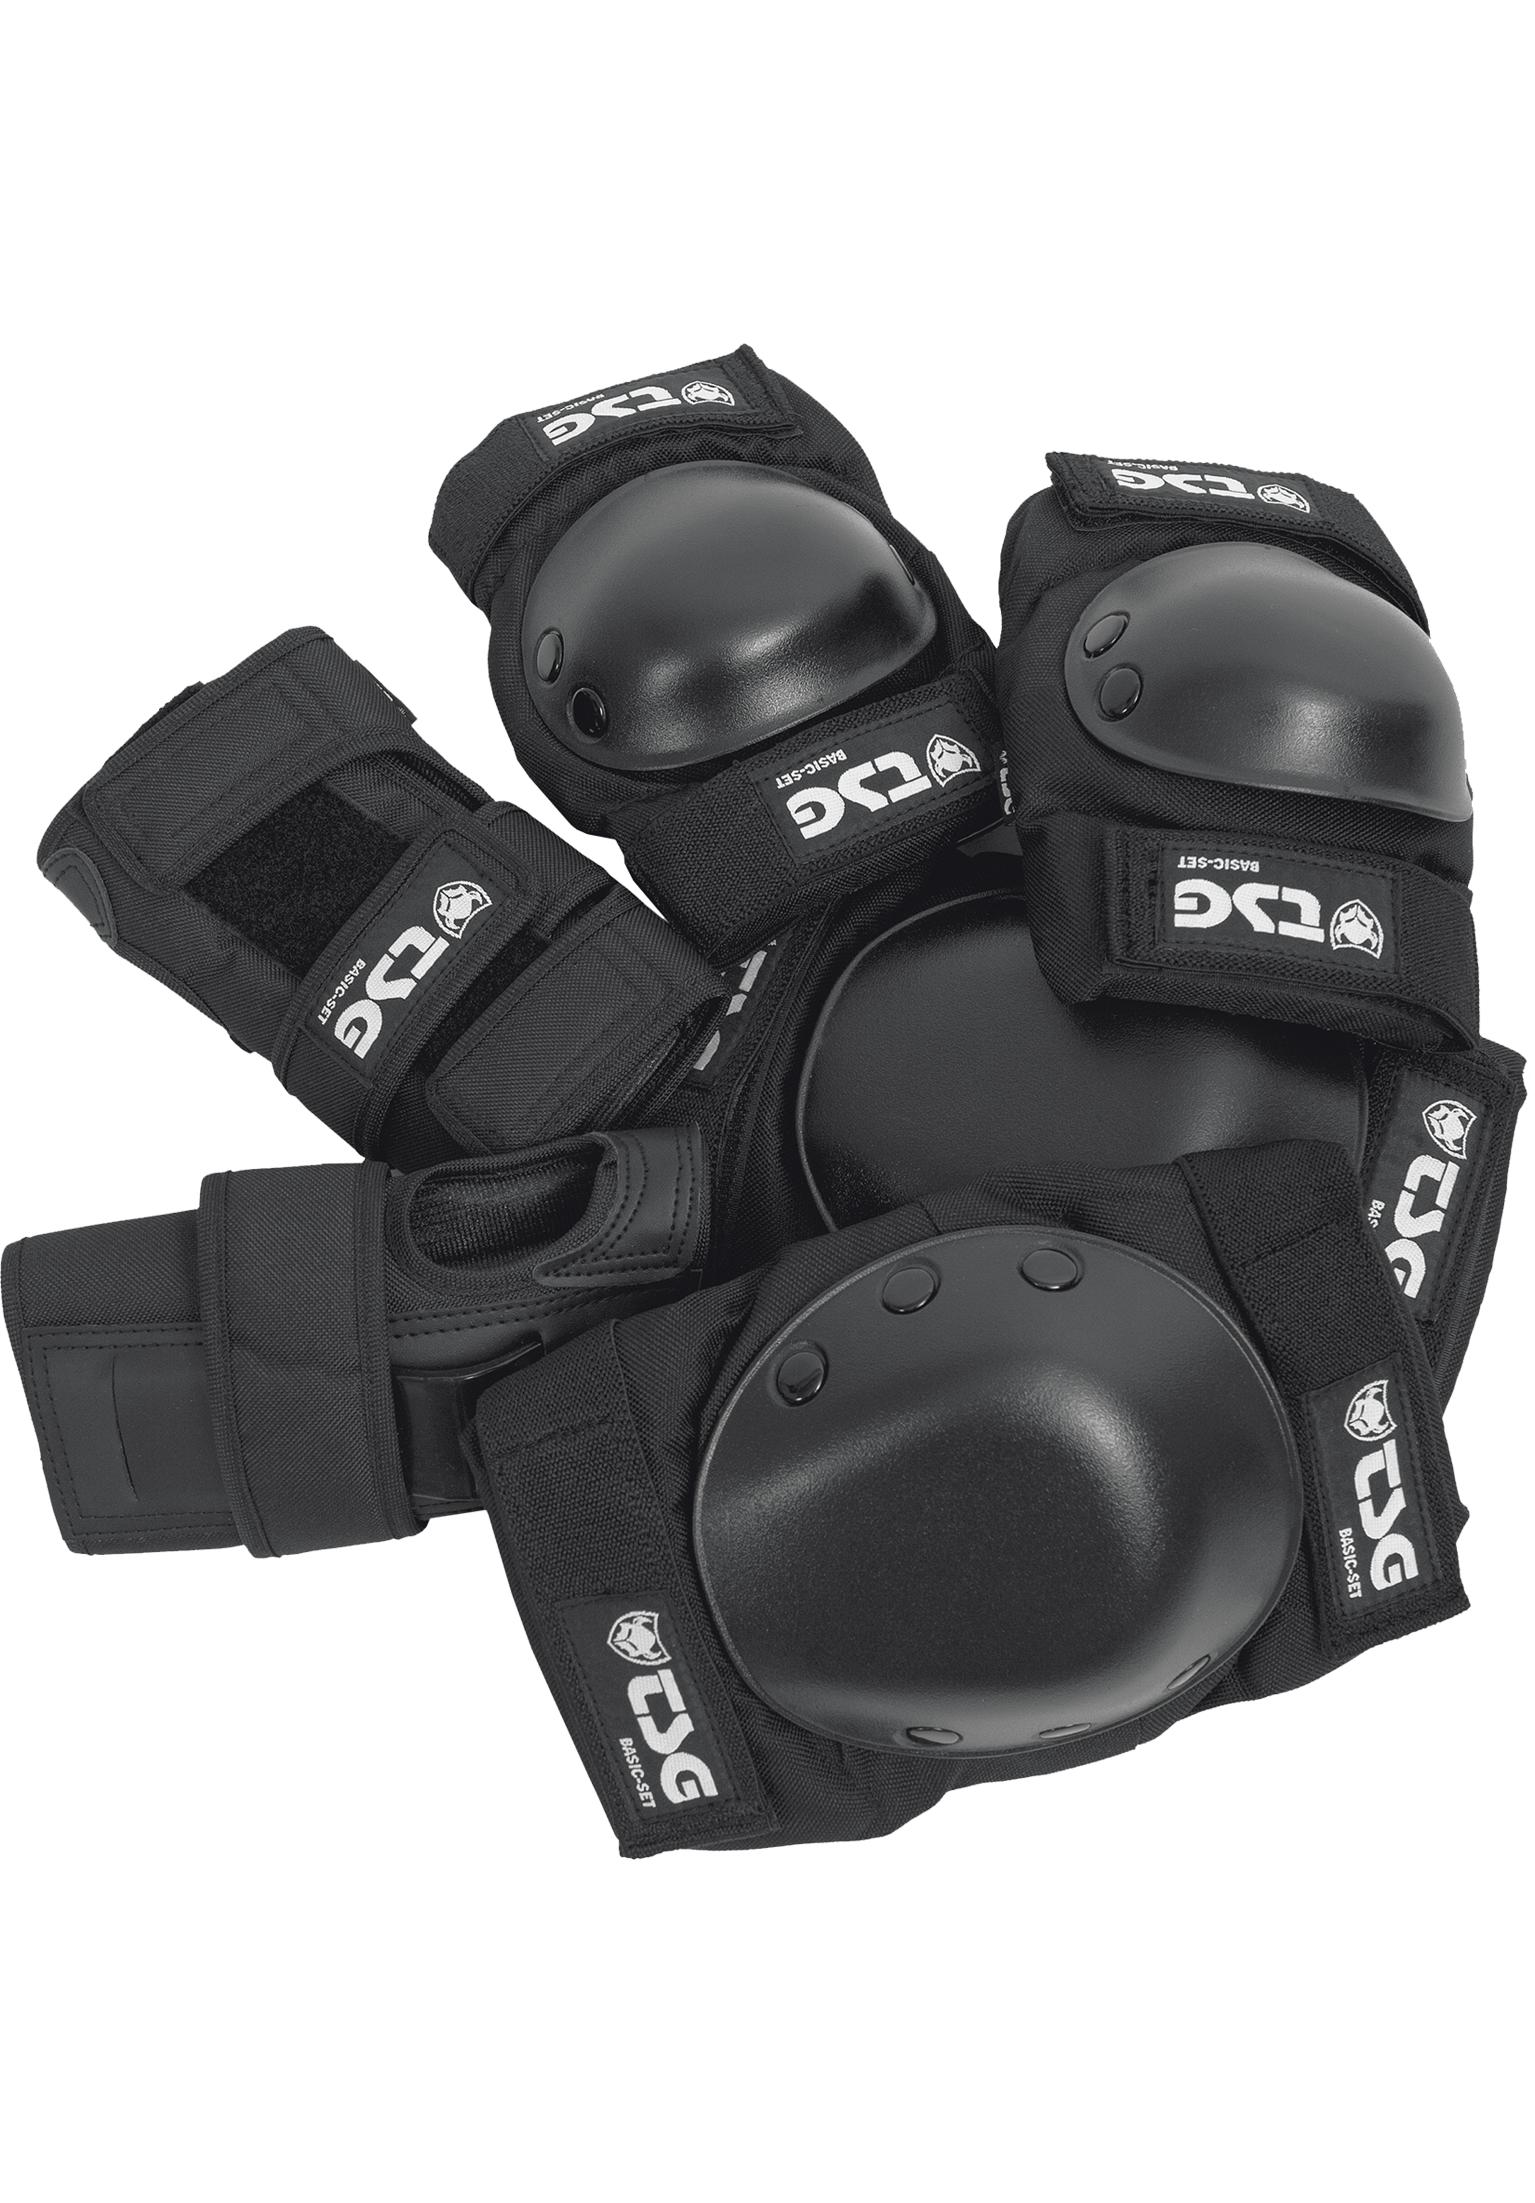 Titus_Aachen_TSG-Schoner-Sets-Basic-Protection-Set-black-Vorderansicht.jpg